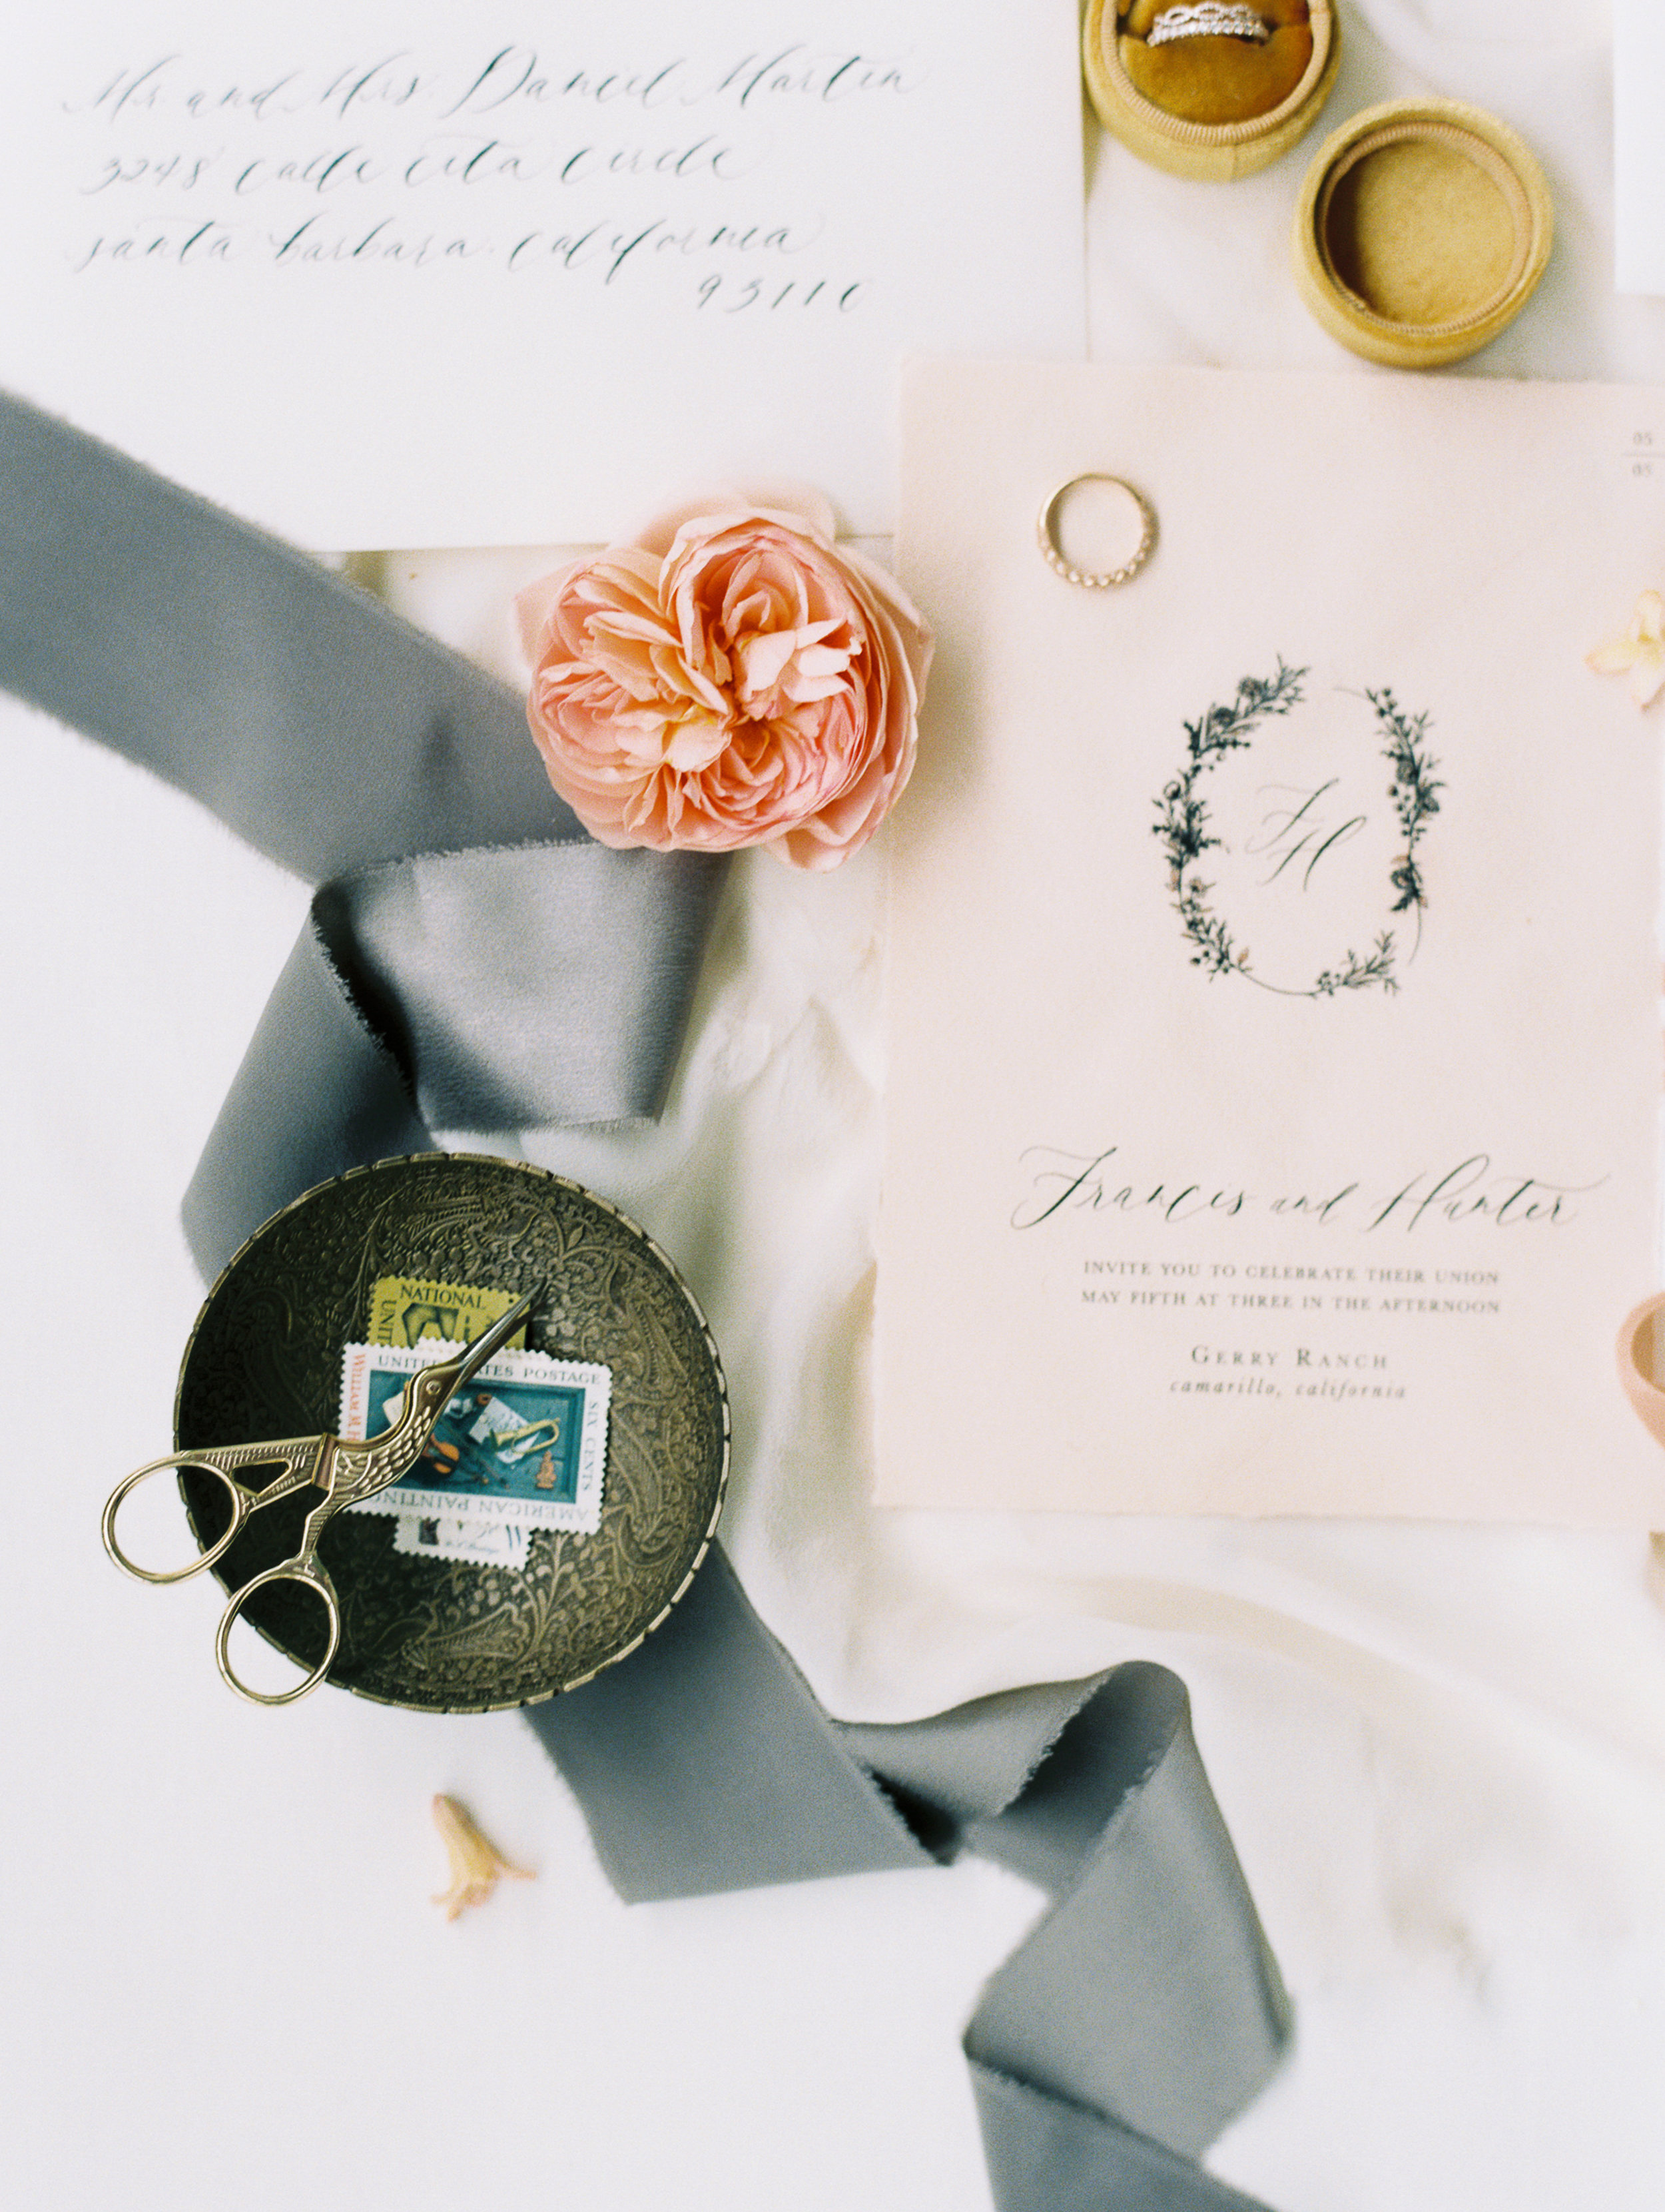 flowy ribbons for wedding stationery and flatlay design inspiration